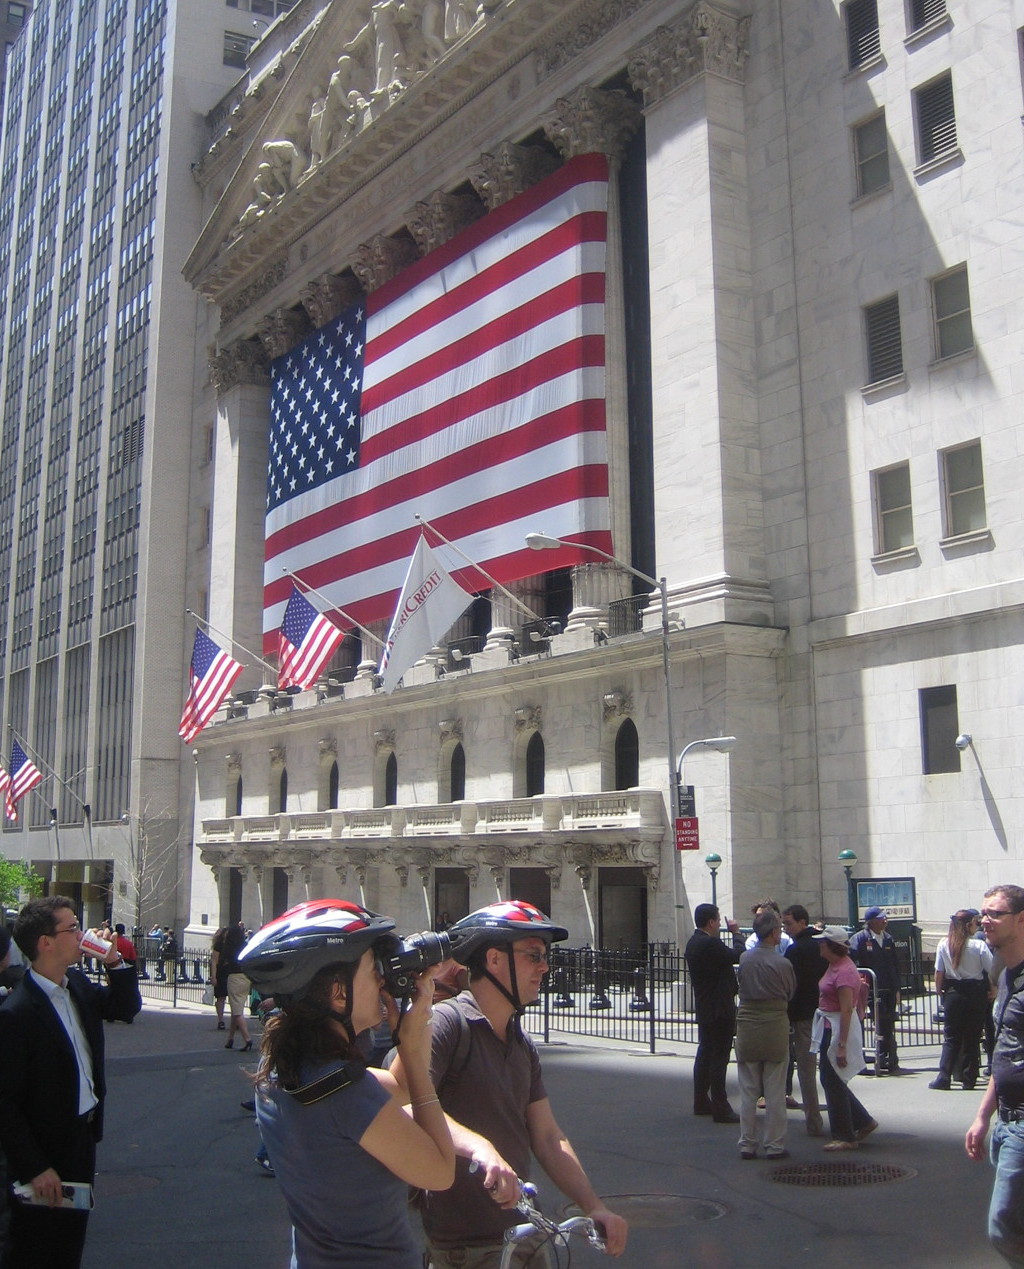 Imagine - The New York Stock Exchange